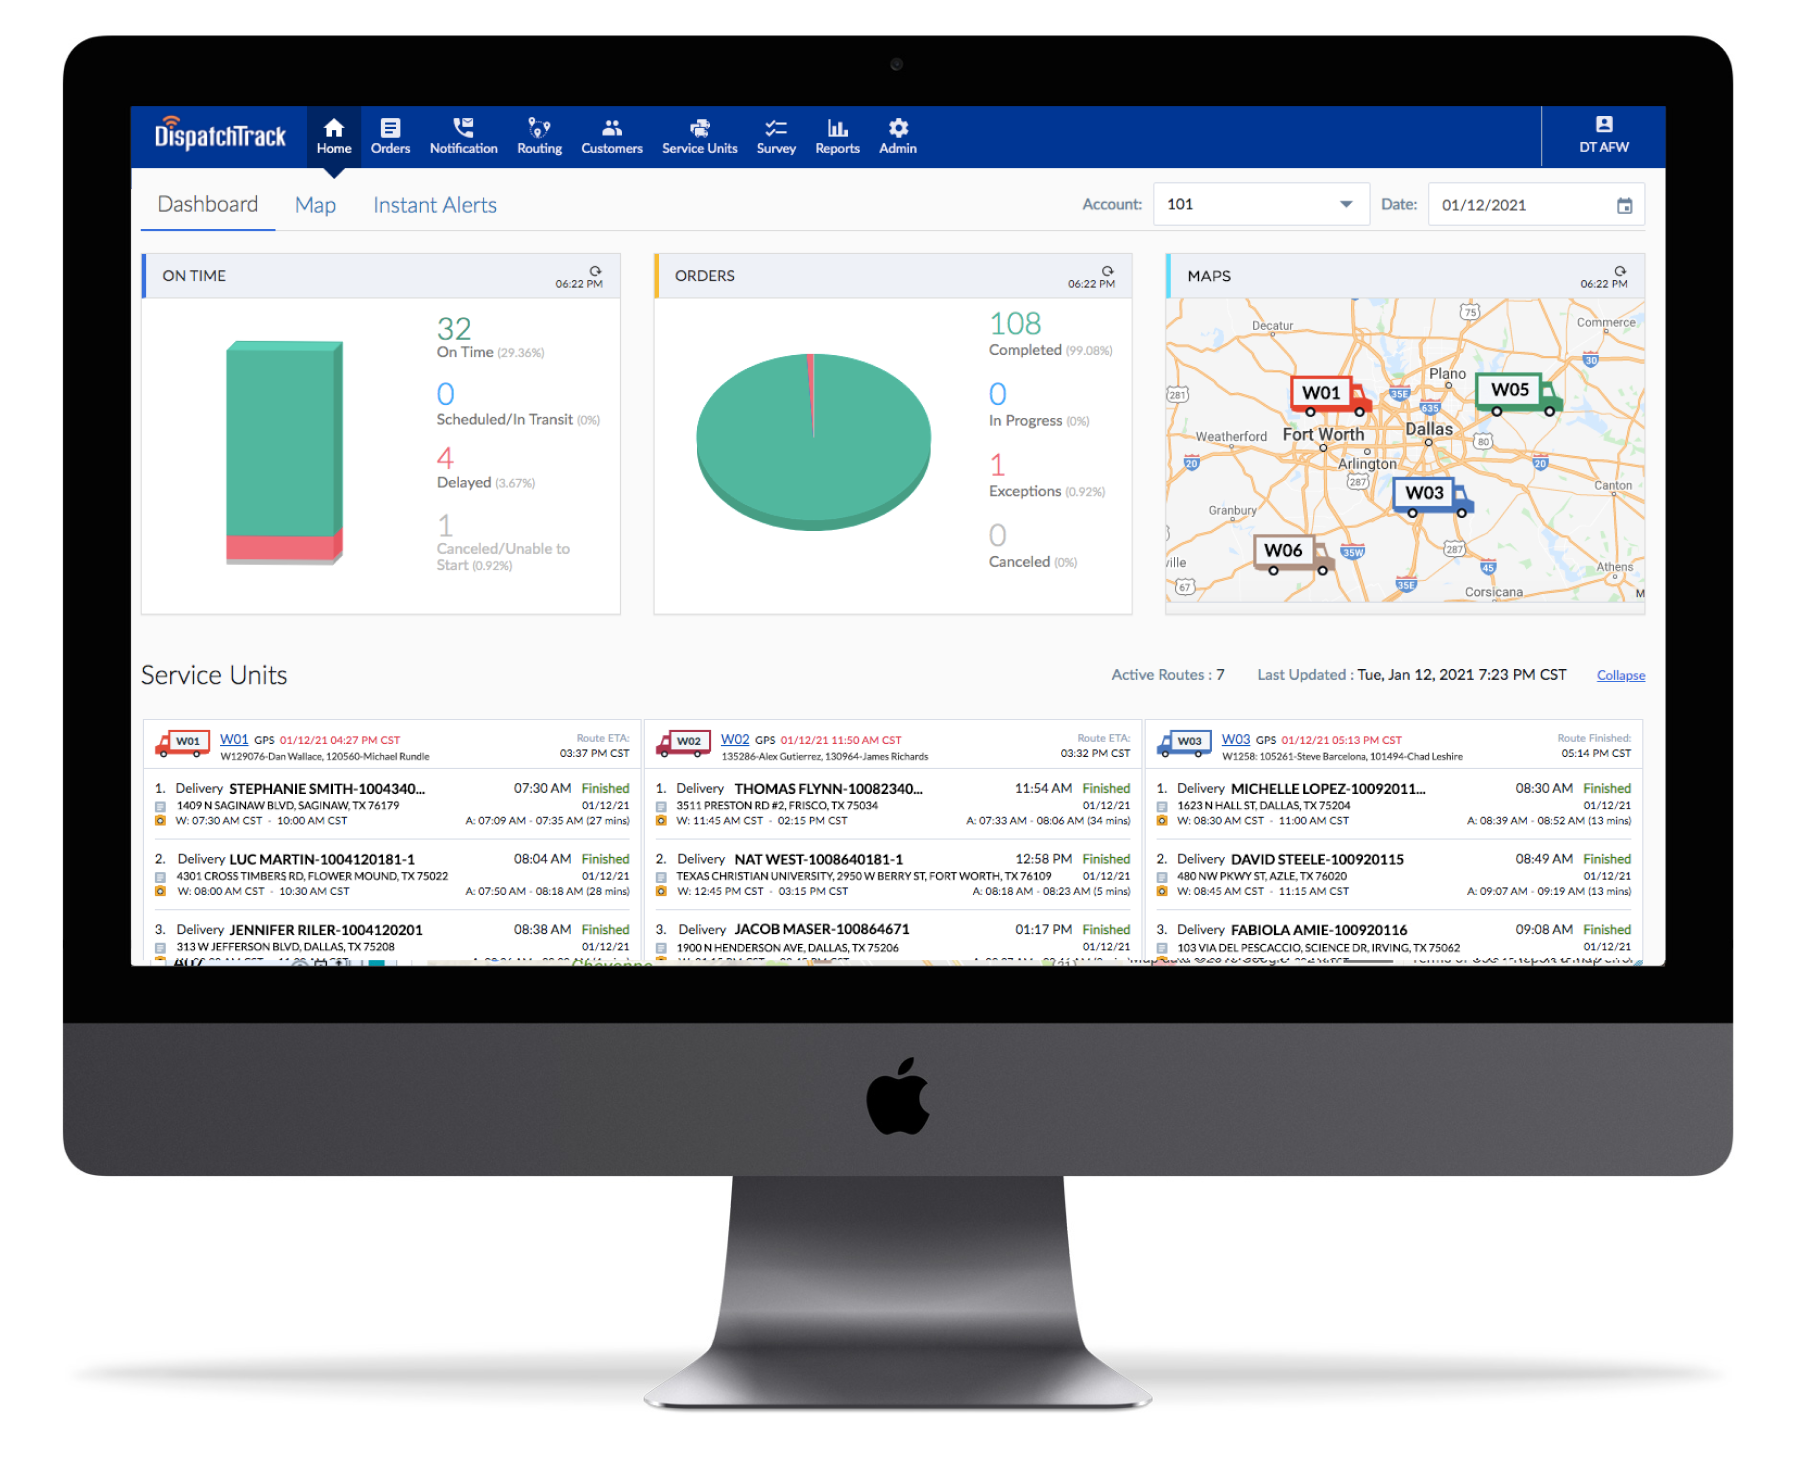 DispatchTrack features and capabilities